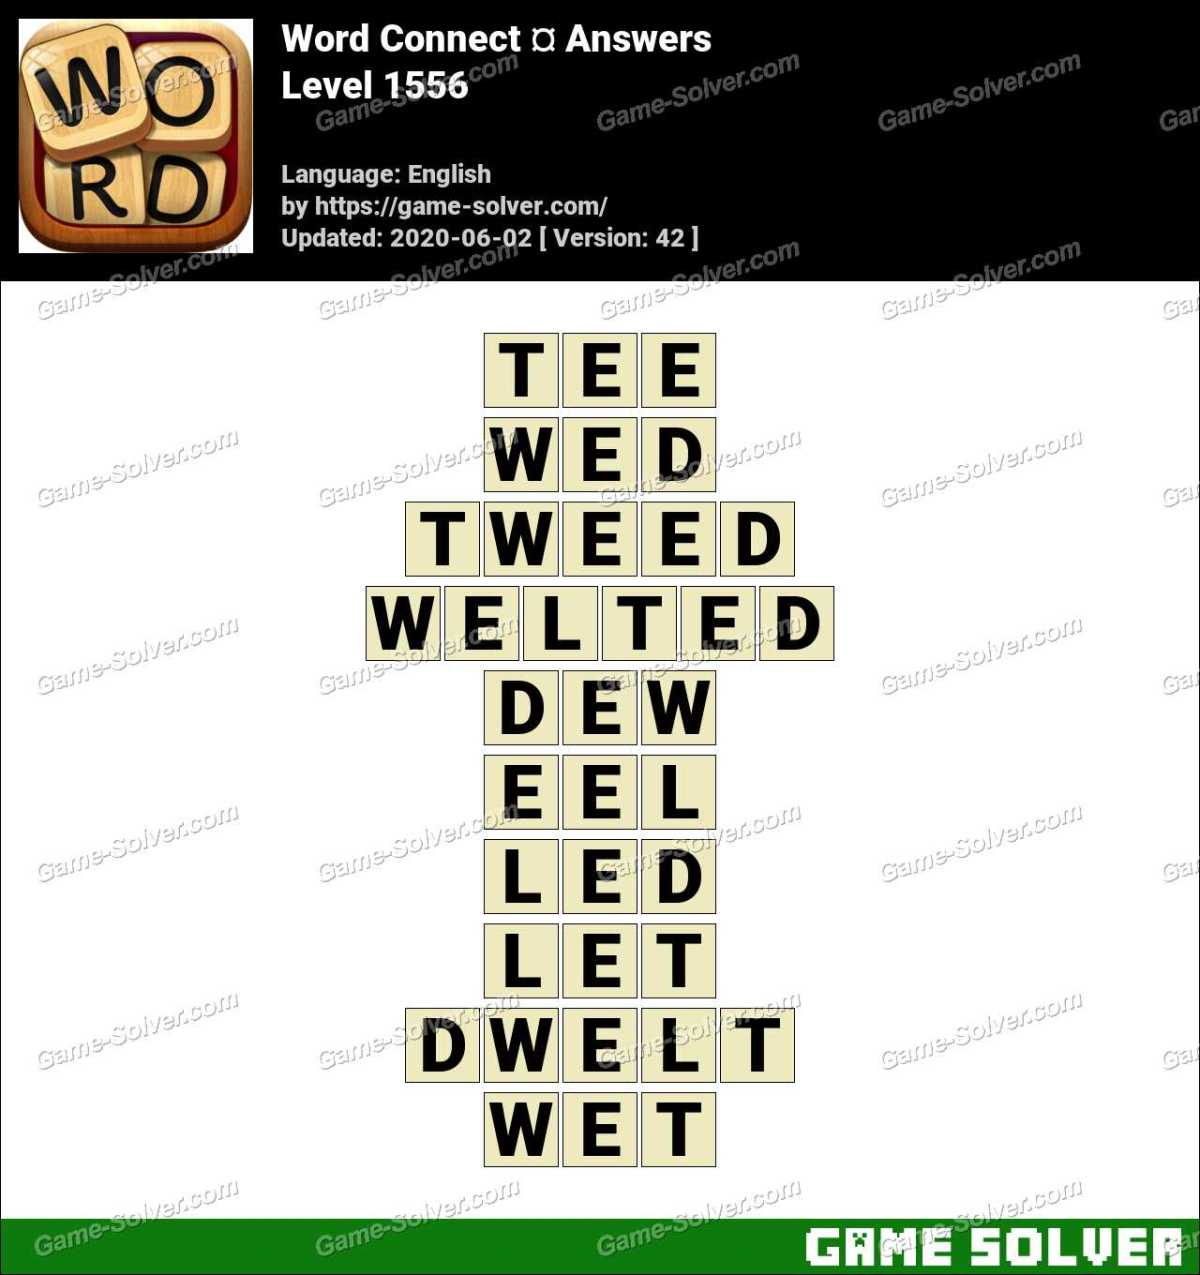 Word Connect Level 1556 Answers